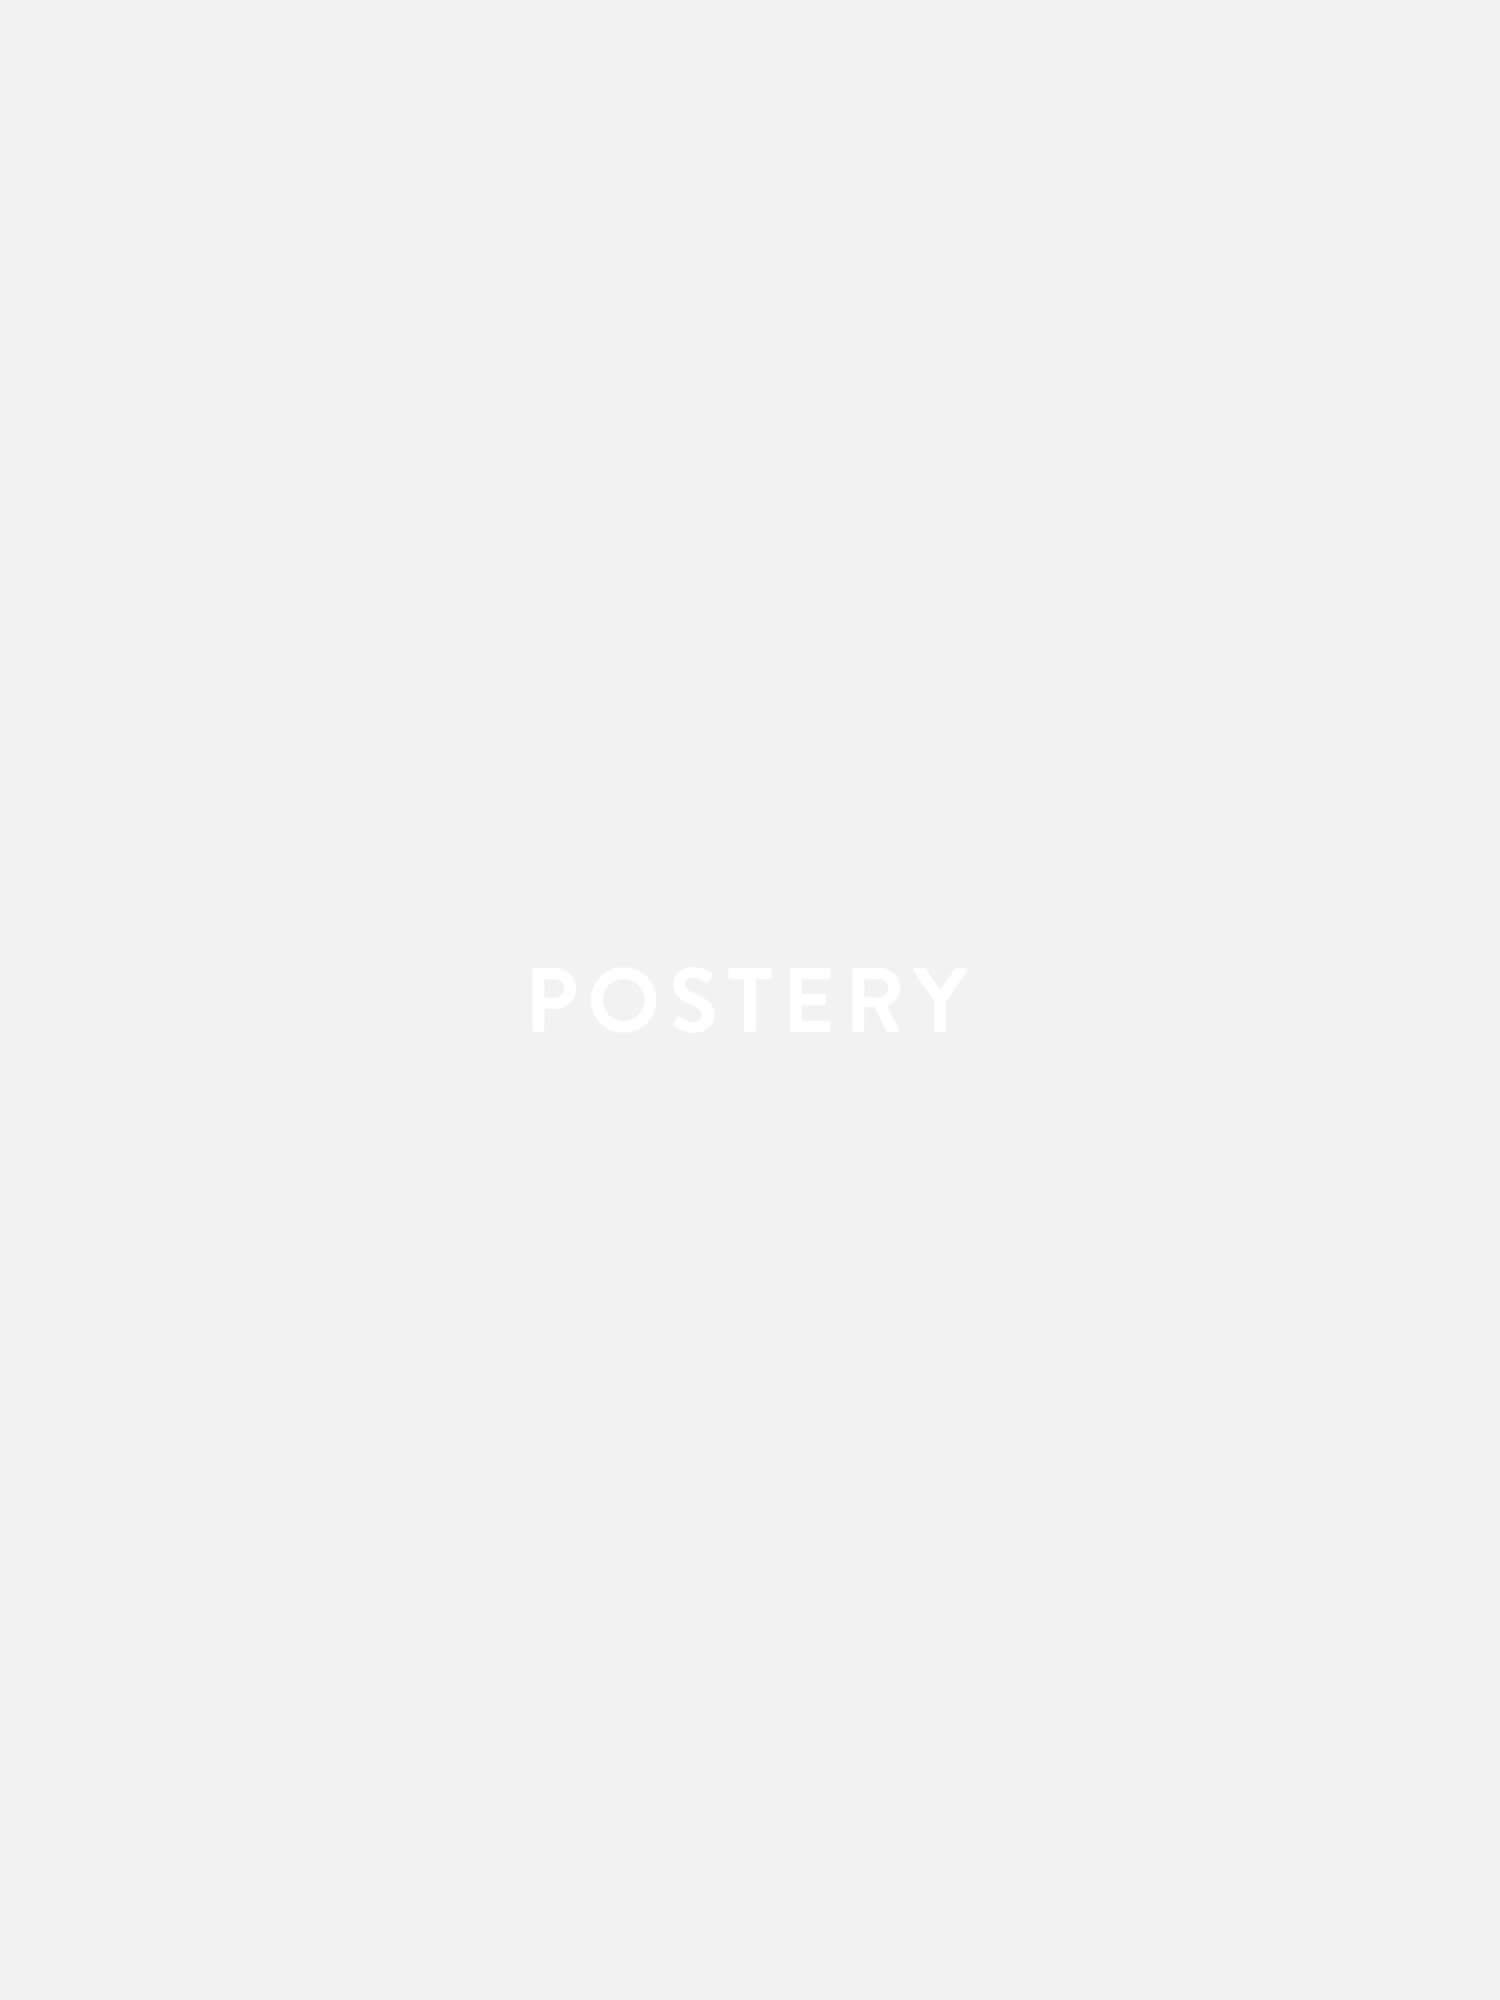 Black Paint Strokes Poster